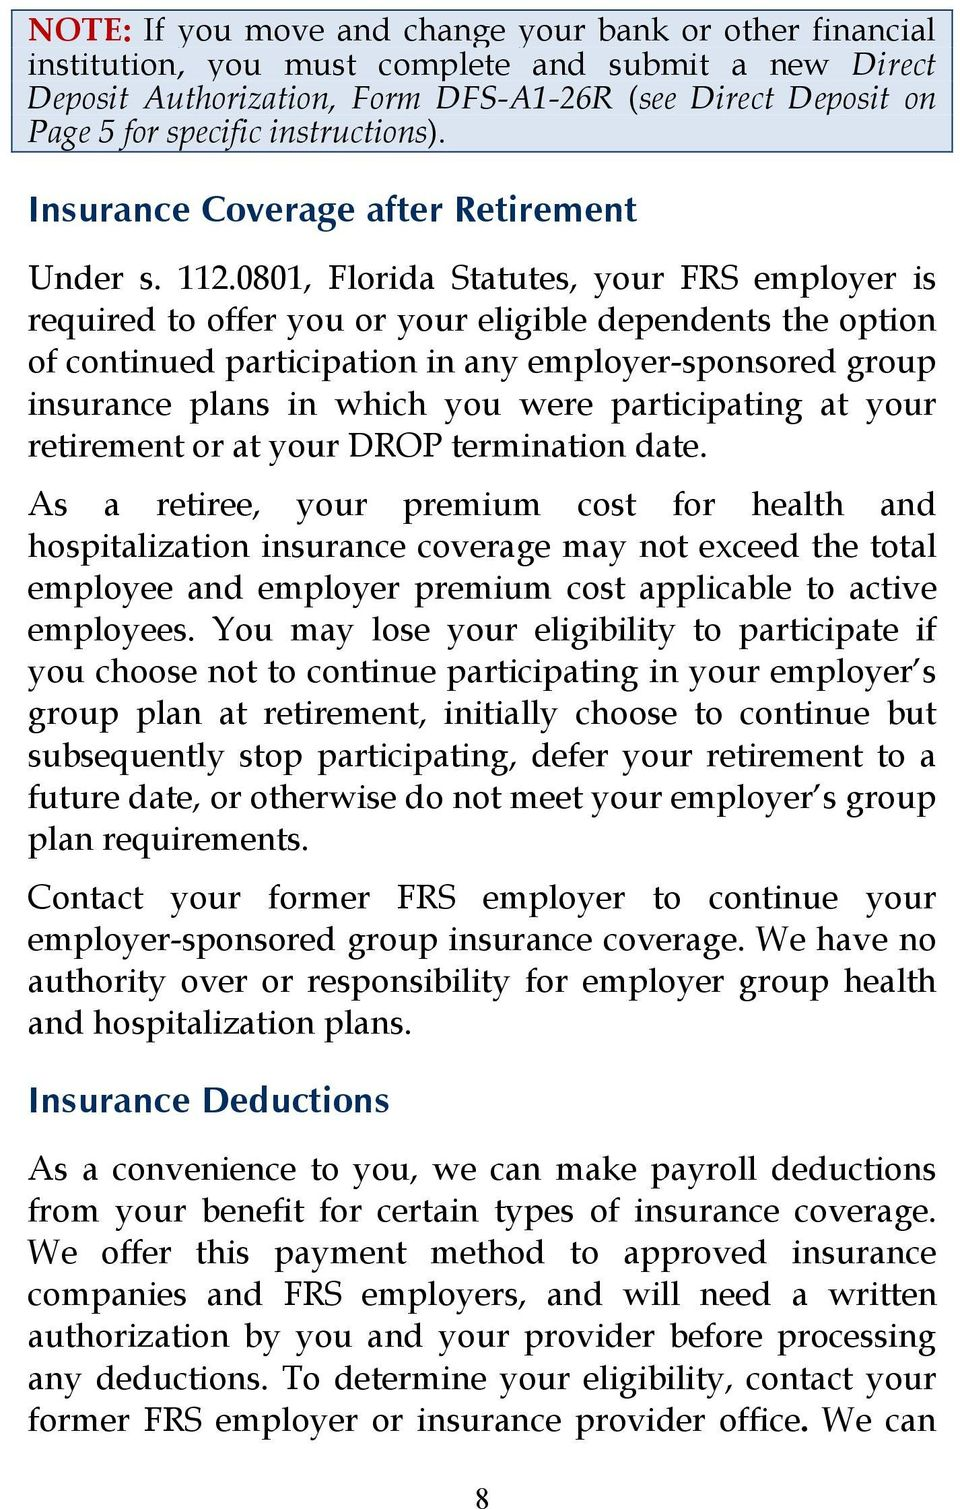 0801, Florida Statutes, your FRS employer is required to offer you or your eligible dependents the option of continued participation in any employer-sponsored group insurance plans in which you were